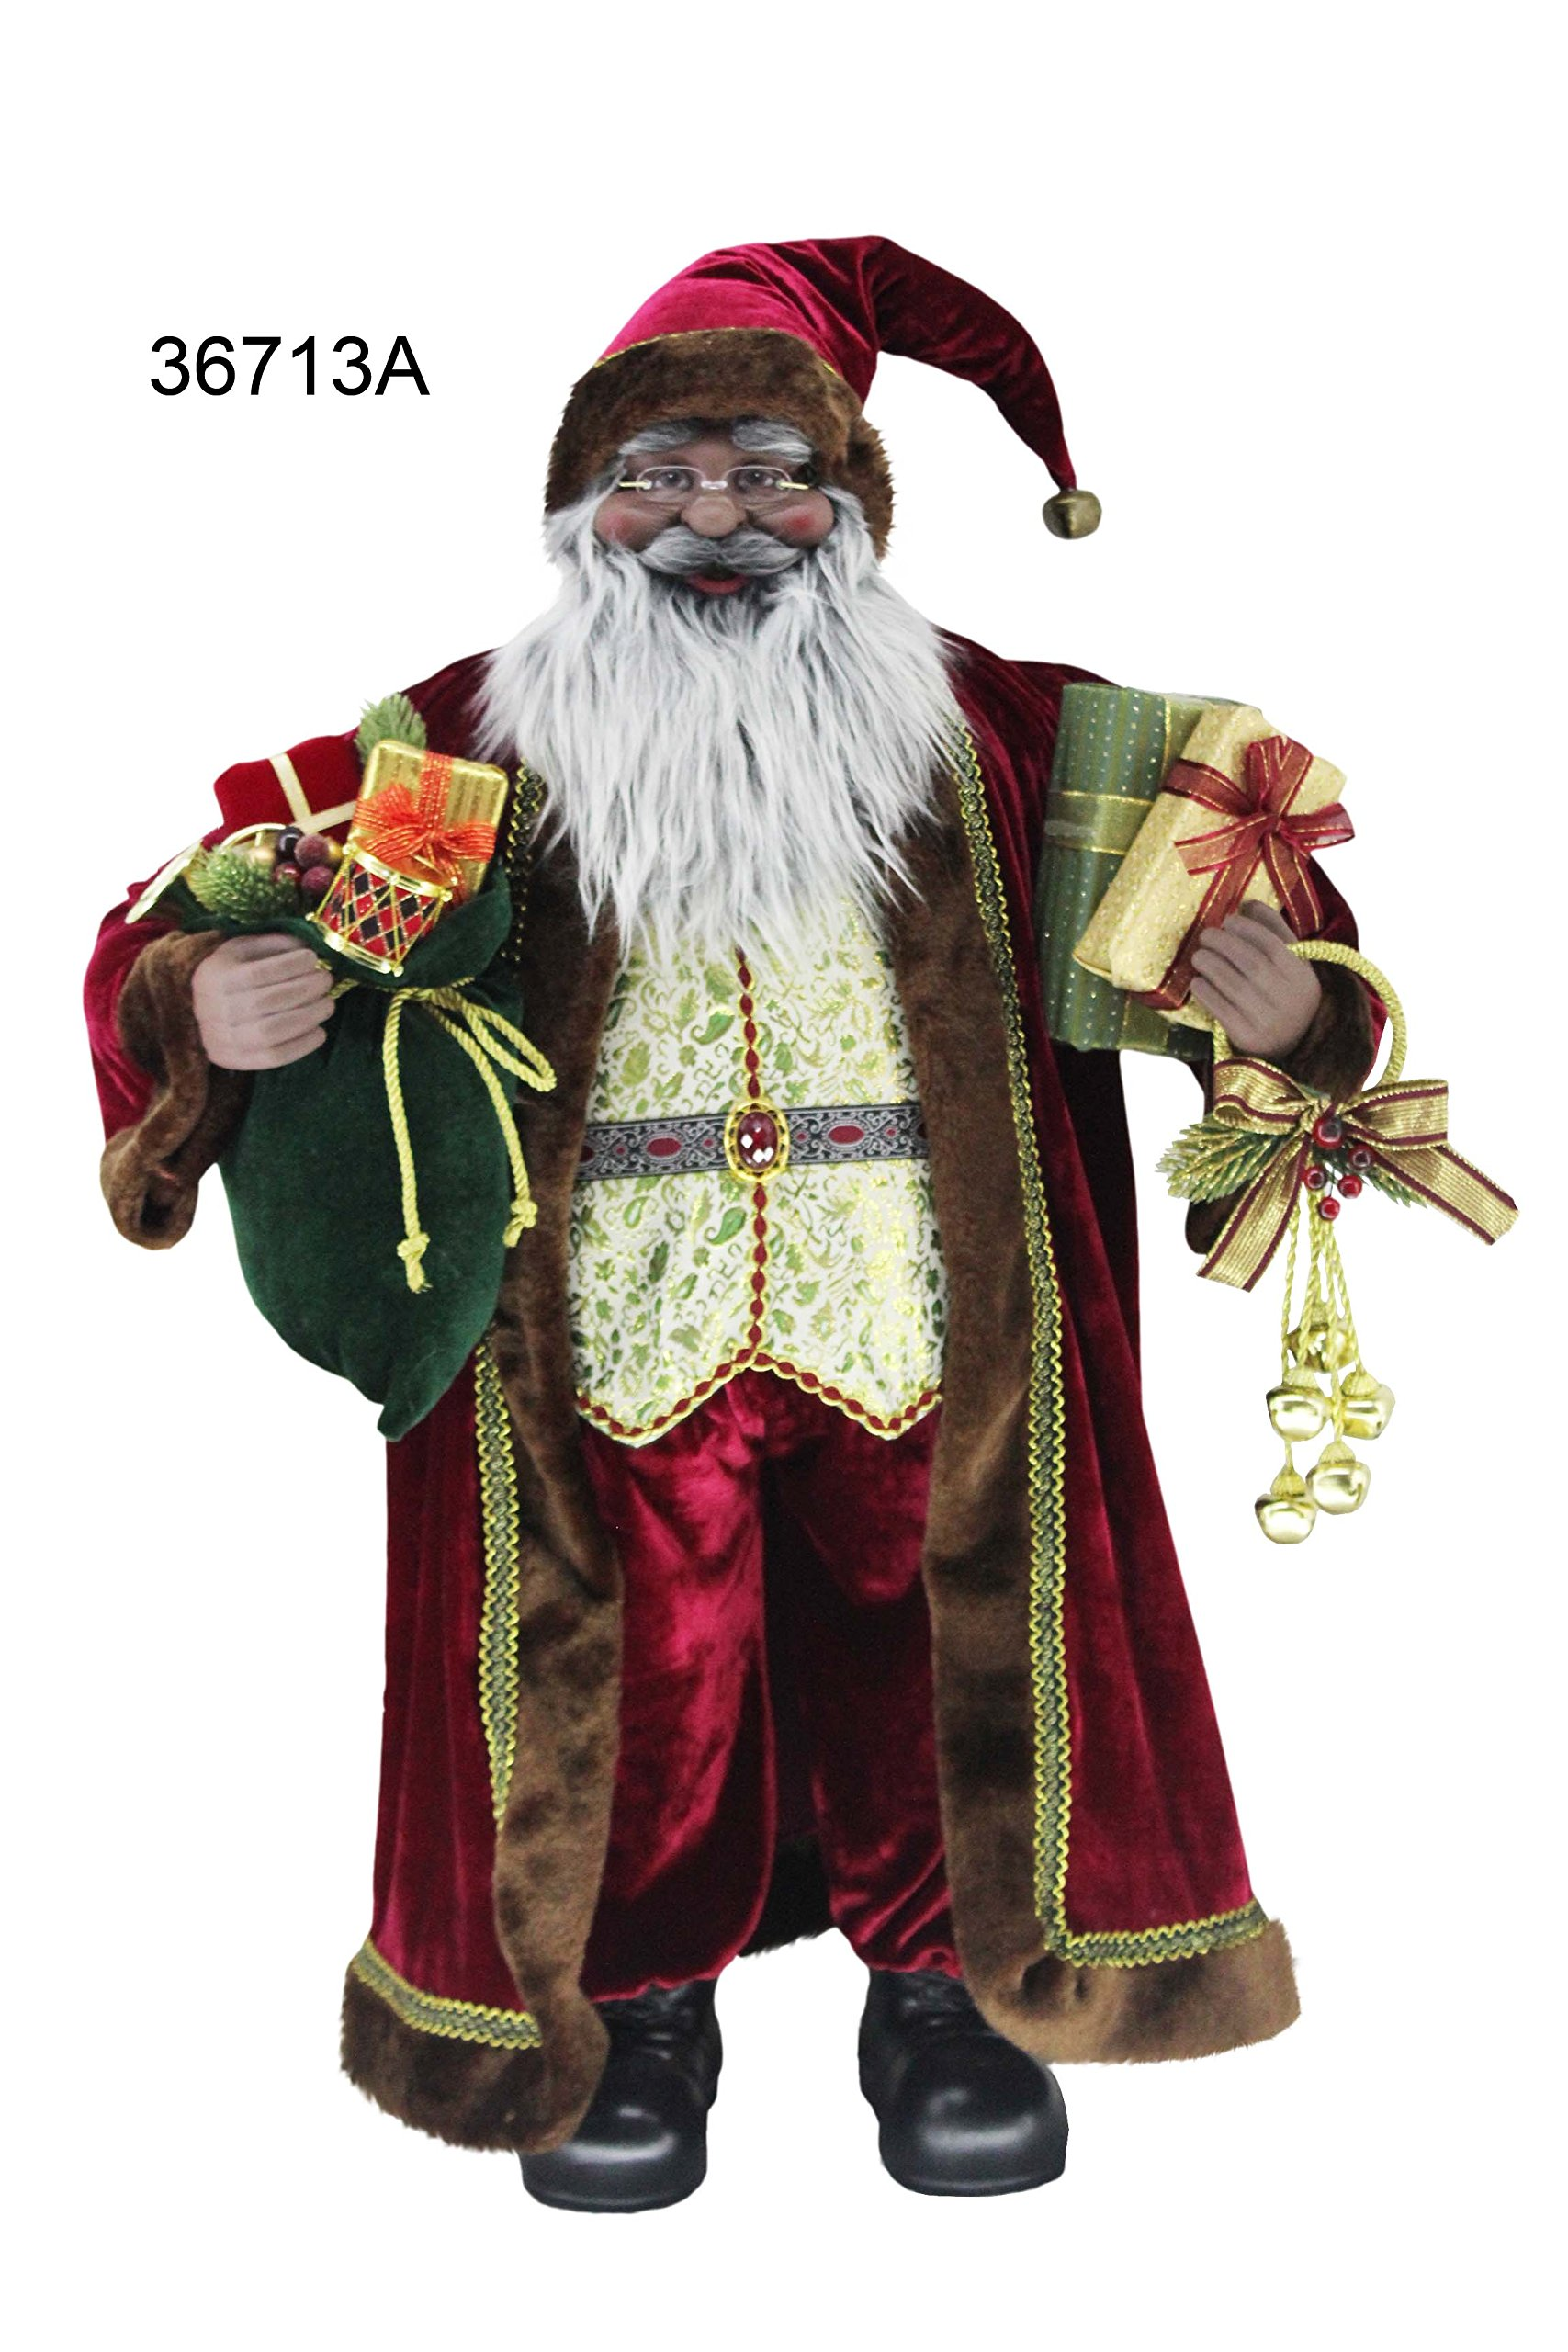 36'' Inch Standing Sensational African American Black Ethnic Santa Claus Christmas Figurine Figure Decoration 36713A